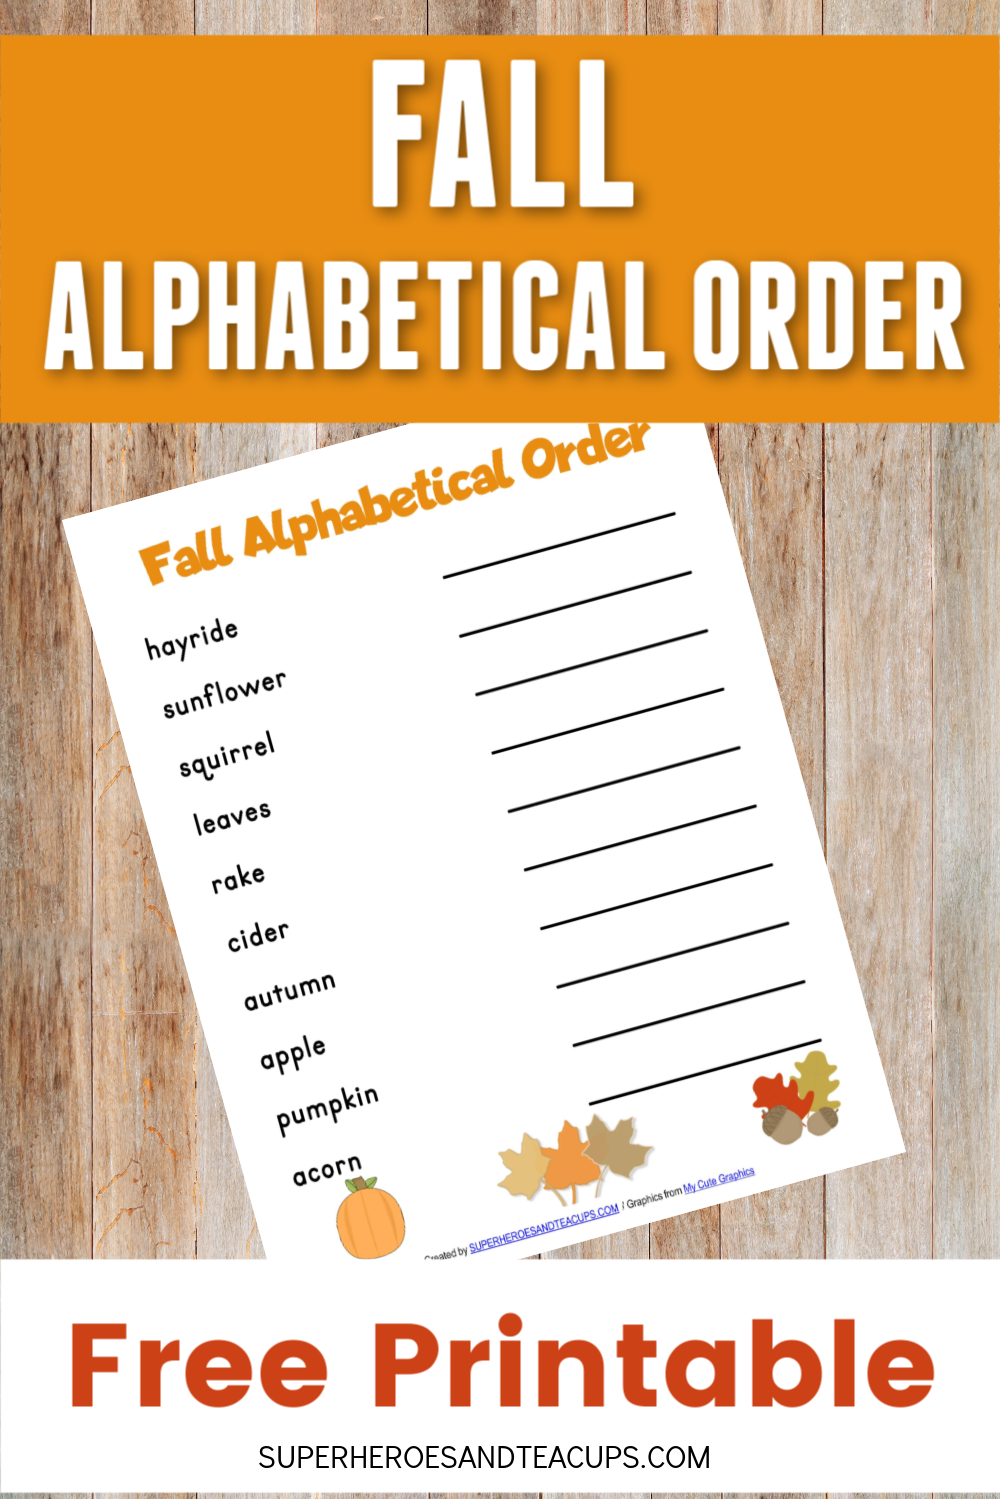 Fall Alphabetical Order Free Printable